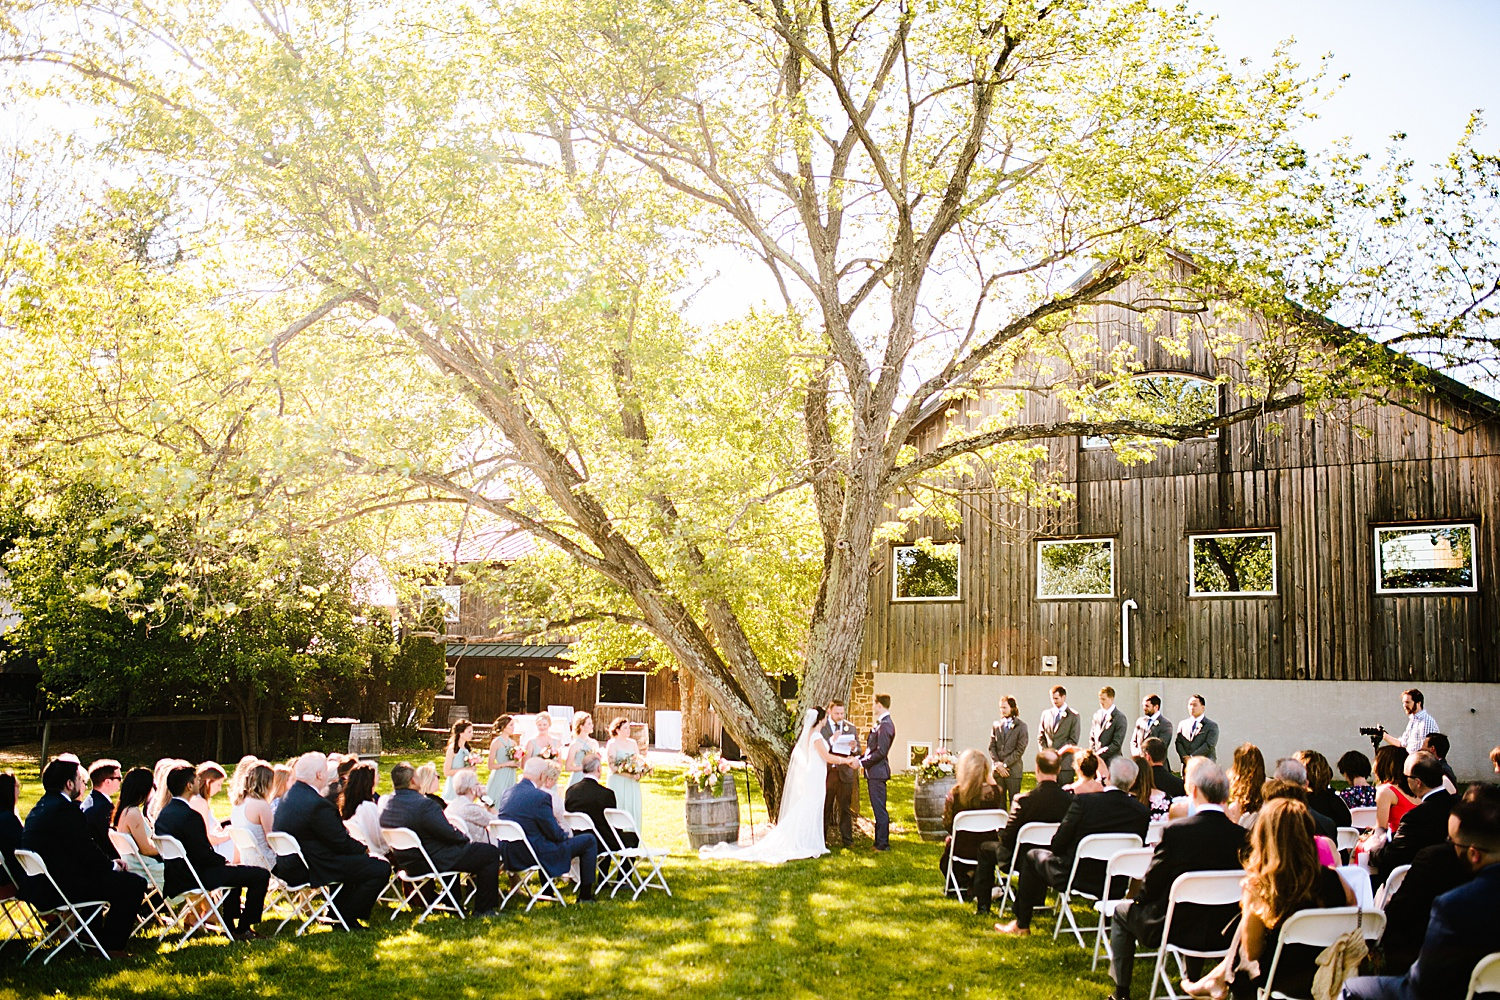 emilyaustin_rosebank_winery_newhope_farm_wedding_image083.jpg